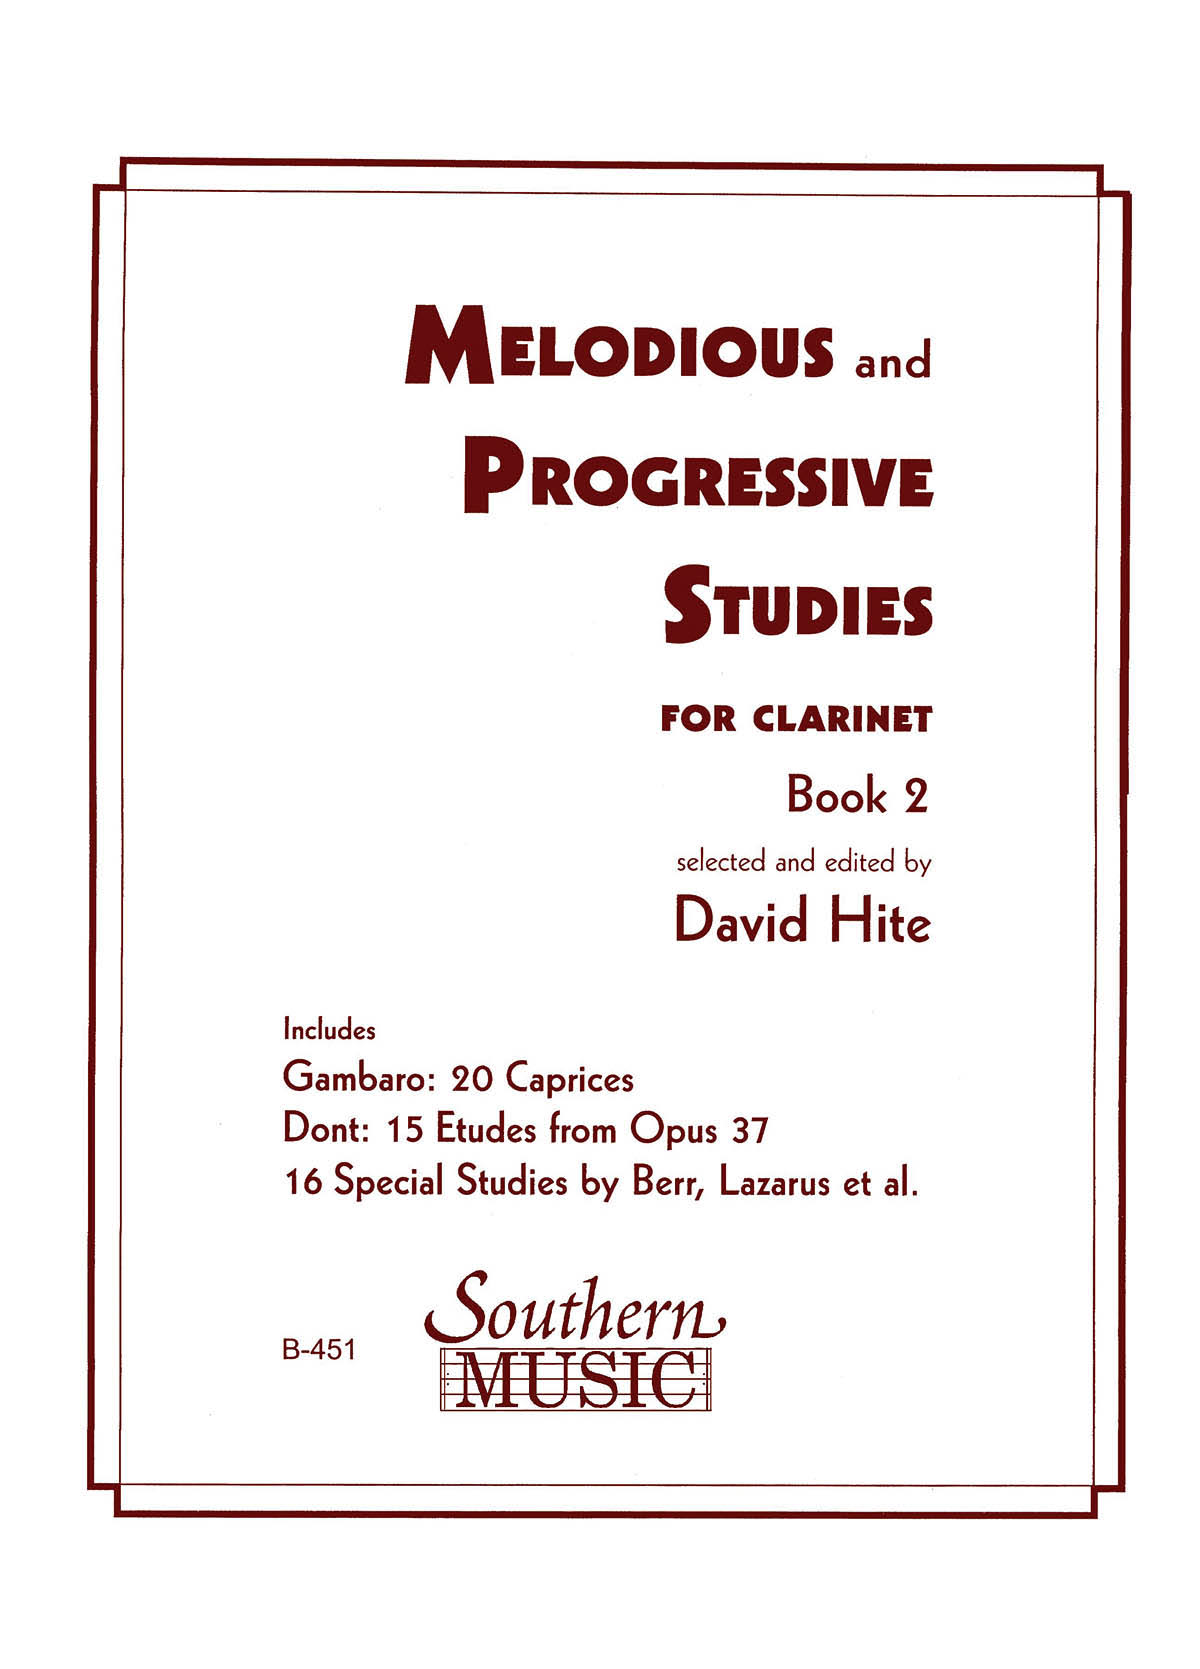 Melodious and Progressive Studies for Clarinet Book 2 - David Hite